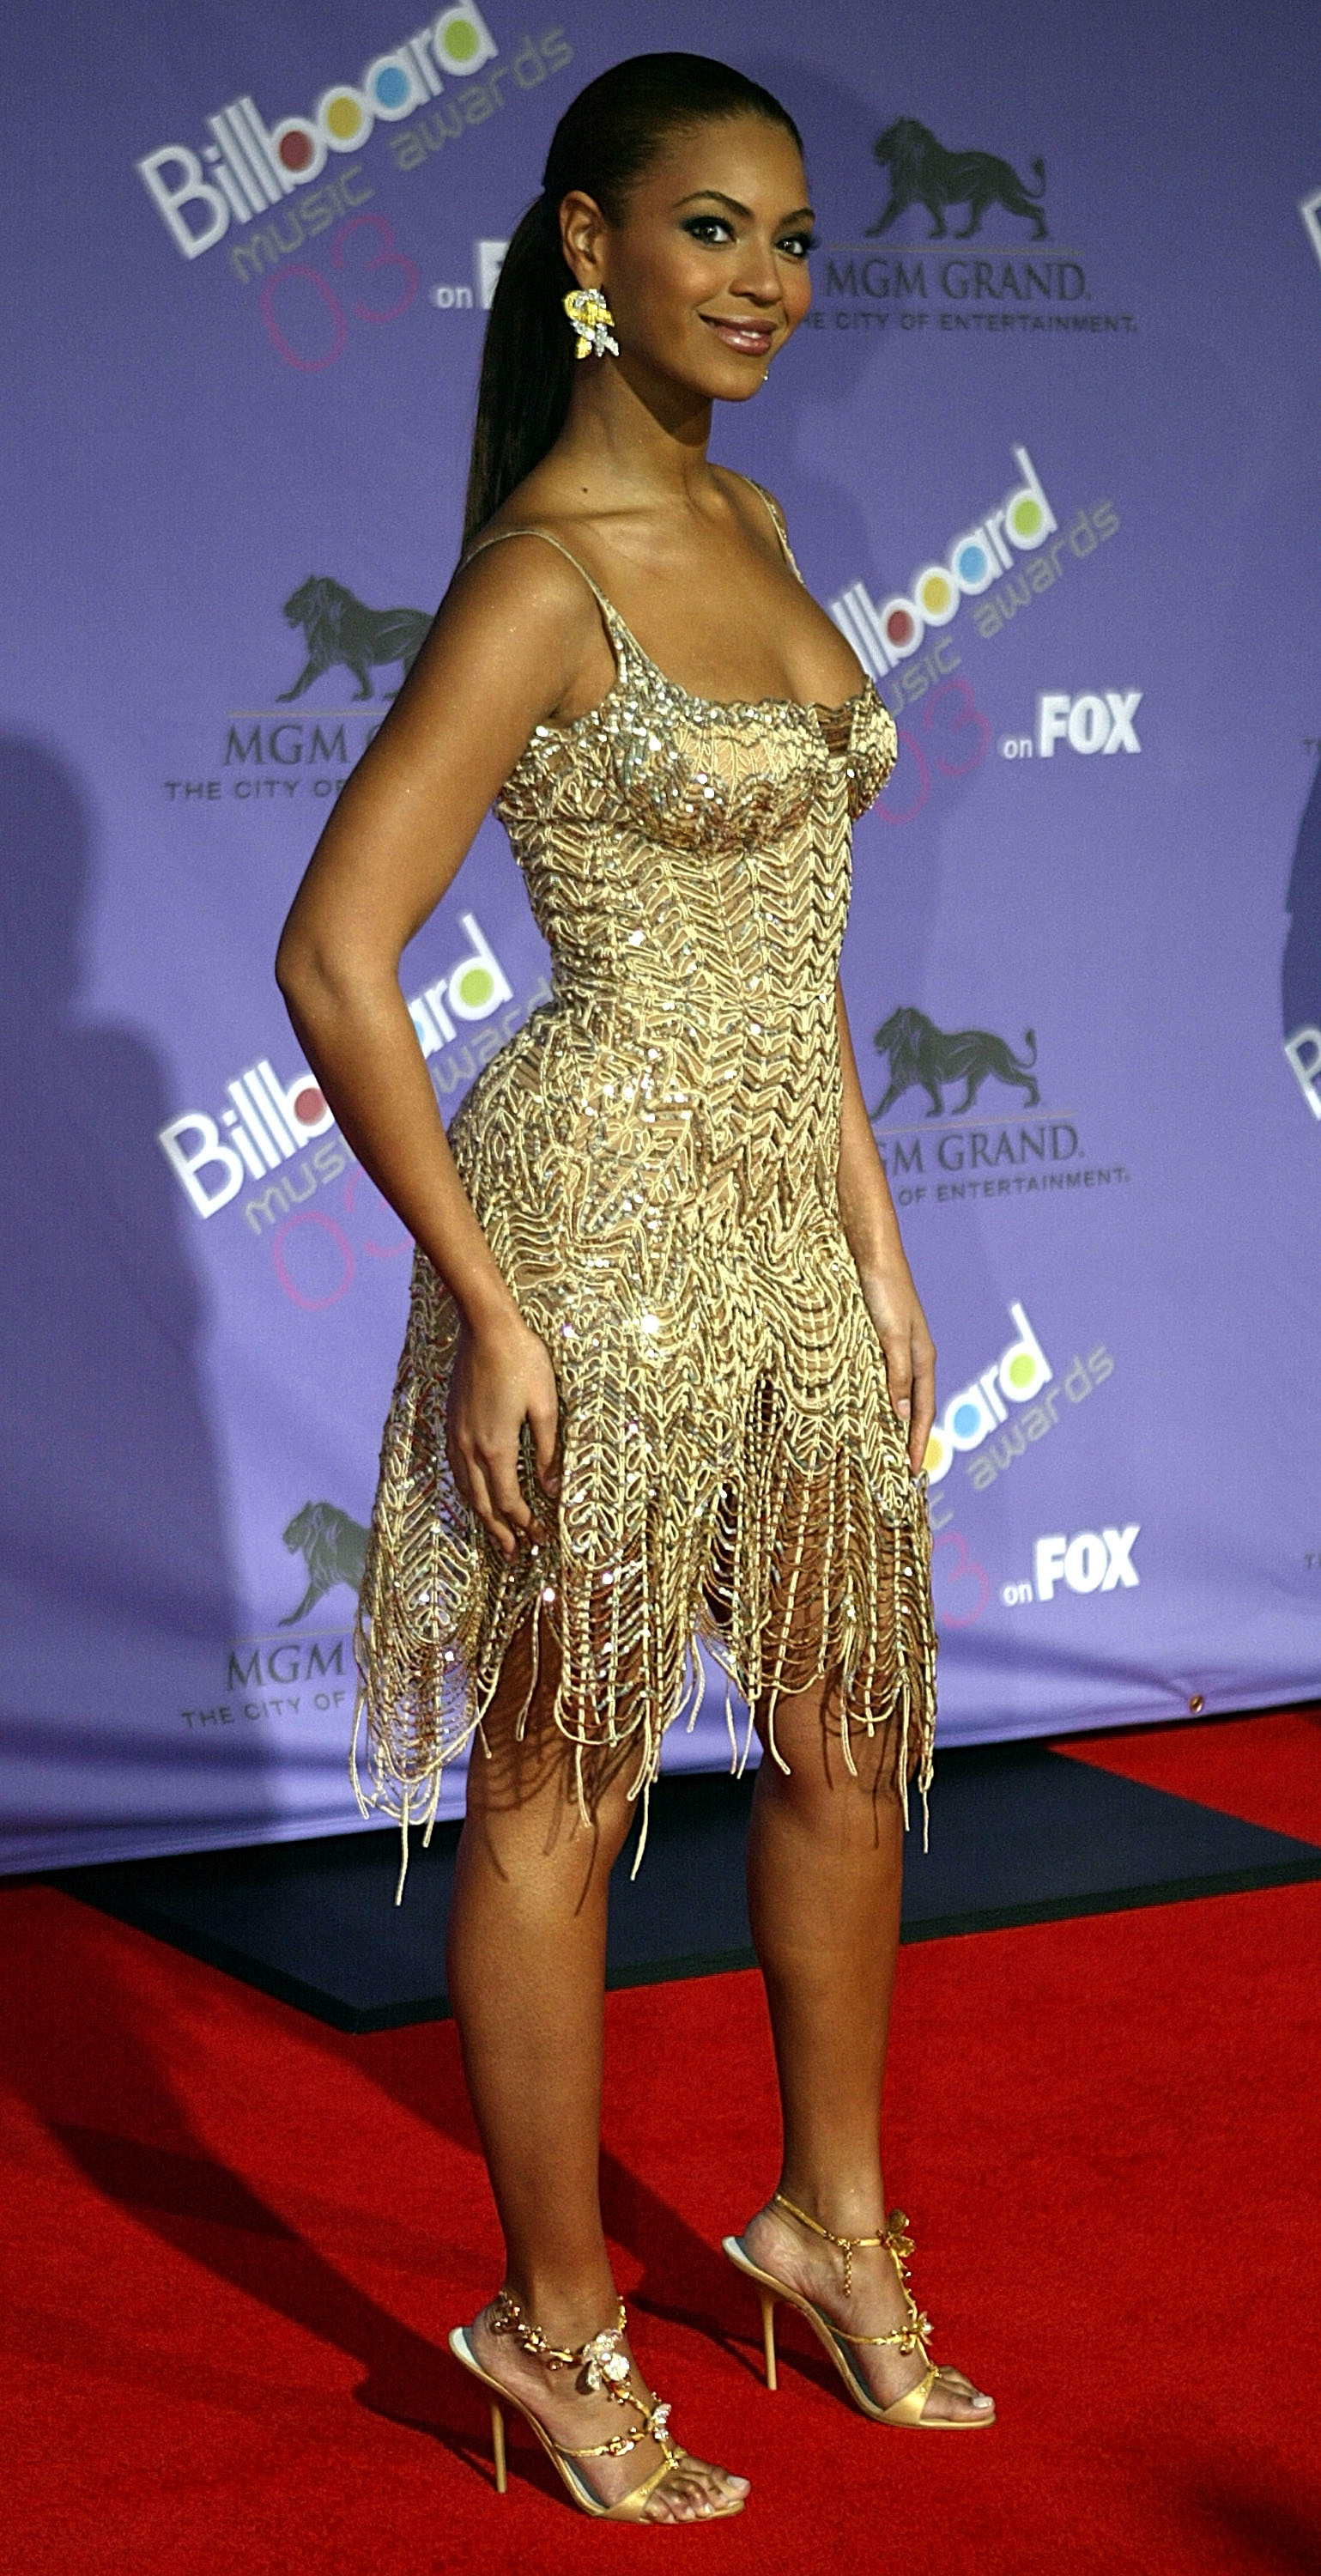 Beyonce Knowles attends the 2003 Billboard Music Awards at the MGM Grand Garden Arena in Las Vegas on Dec. 10, 2003.